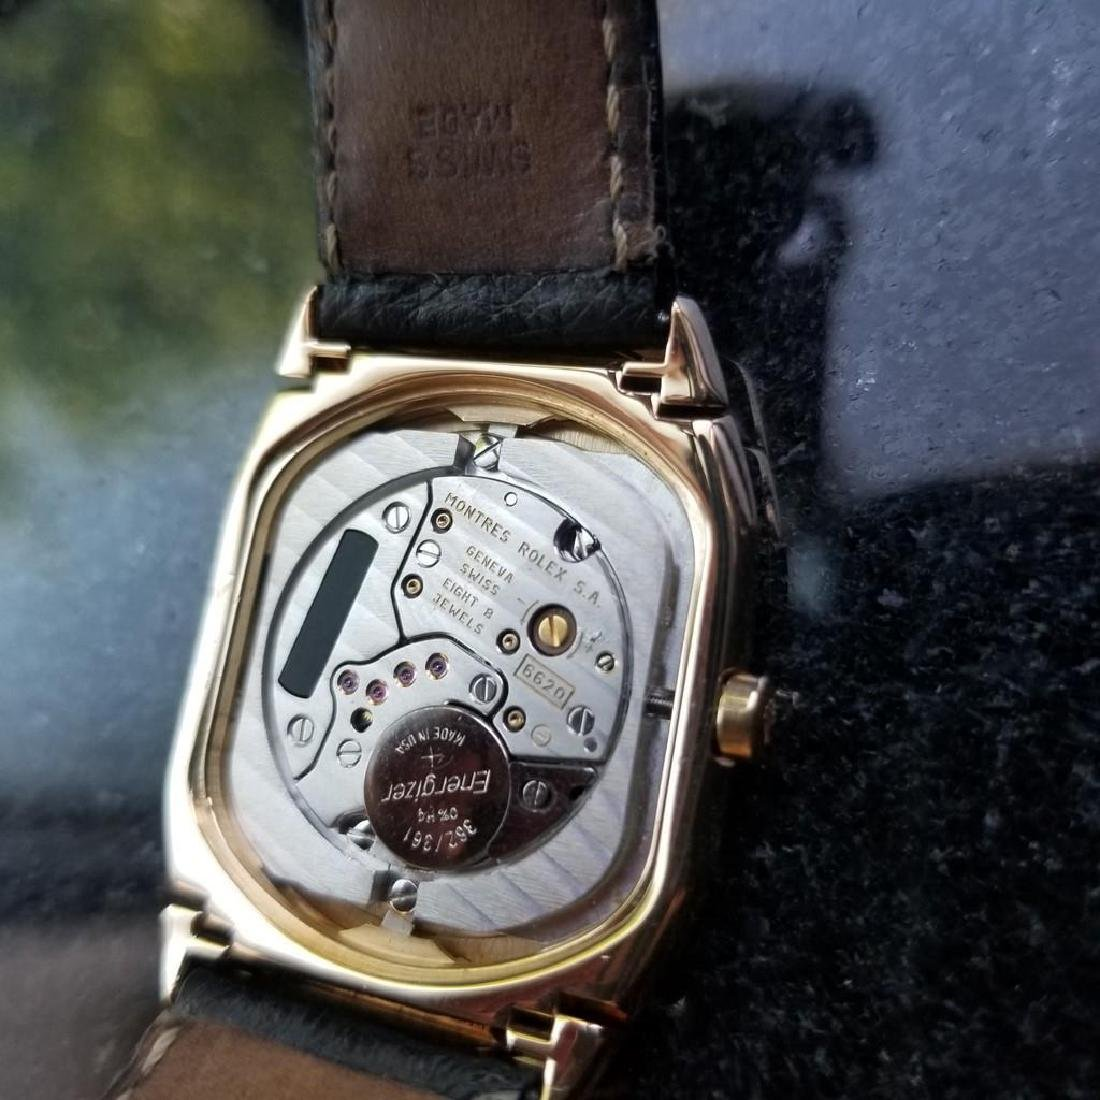 ROLEX Cellini 6633 18K Solid Gold Watch, c.2000 all - 9